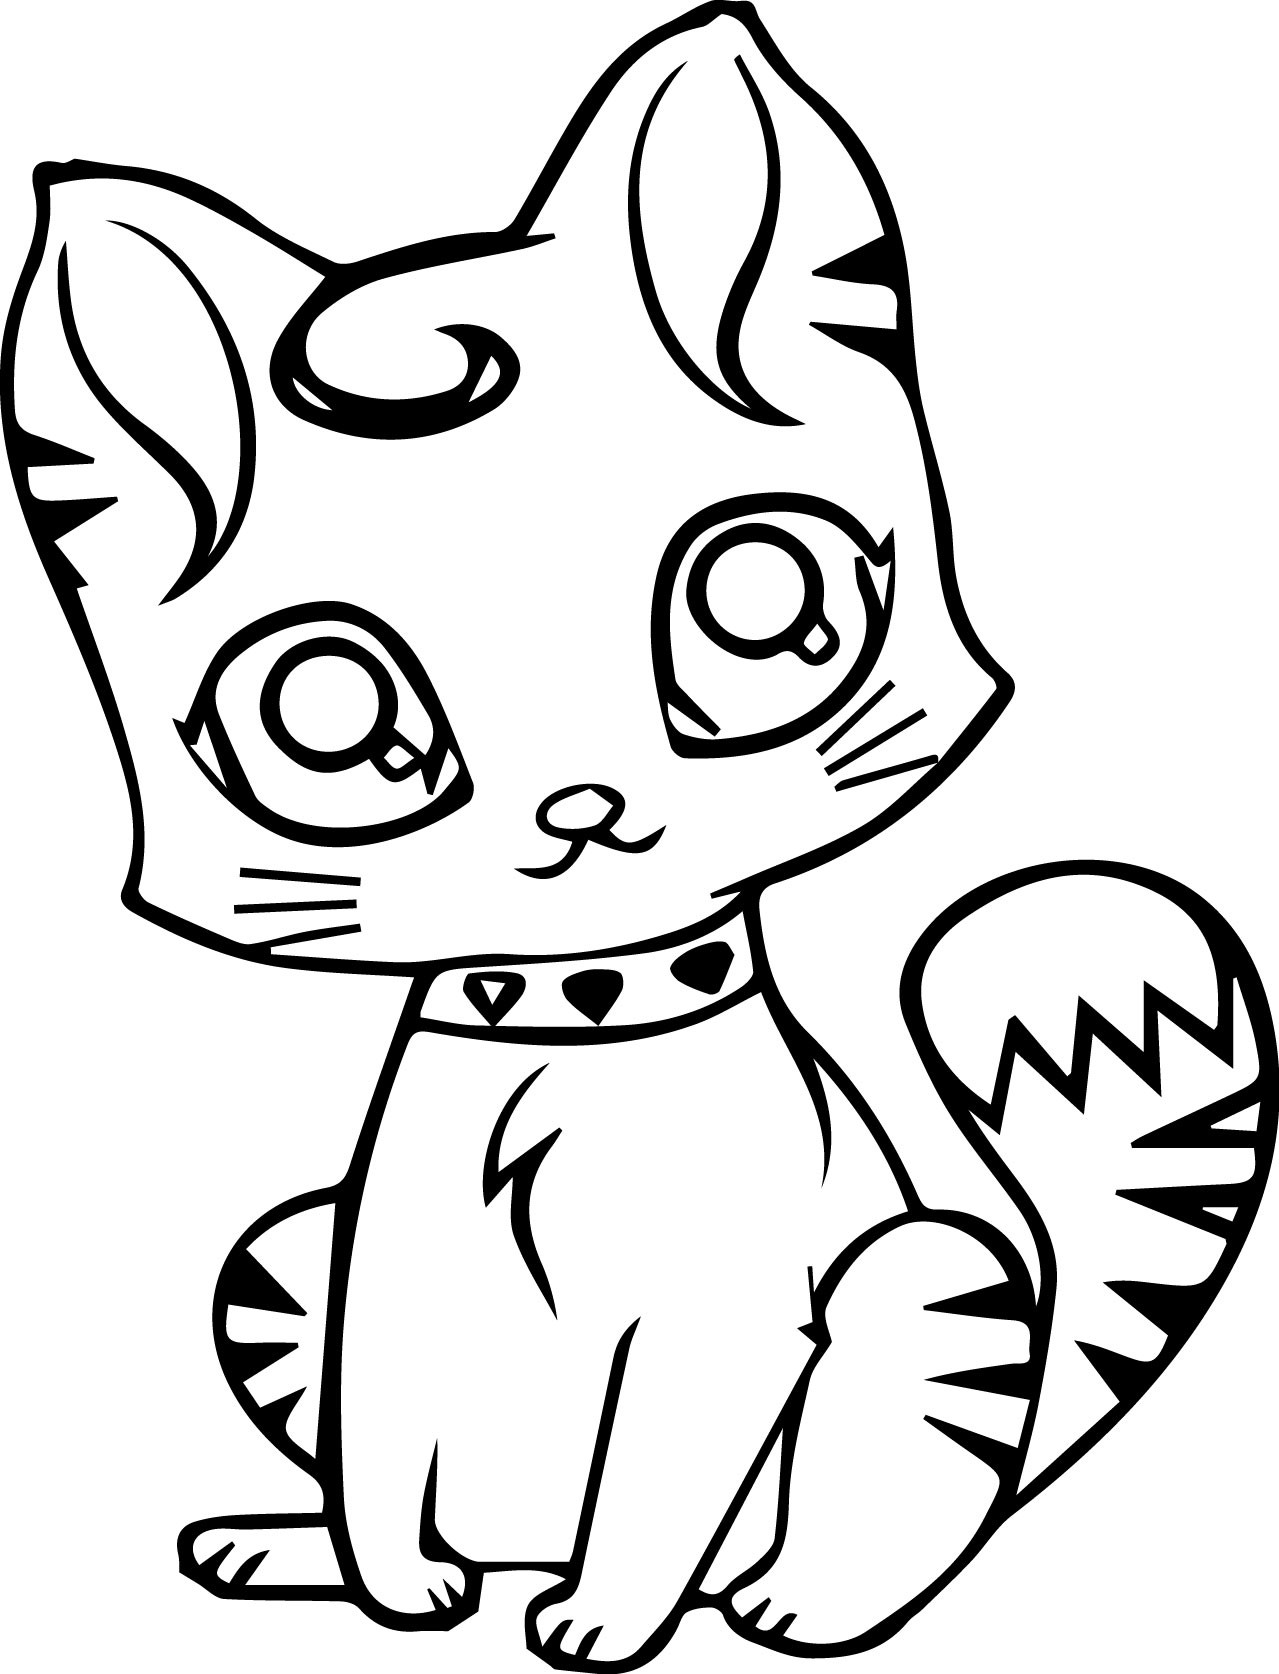 Colouring pages cats